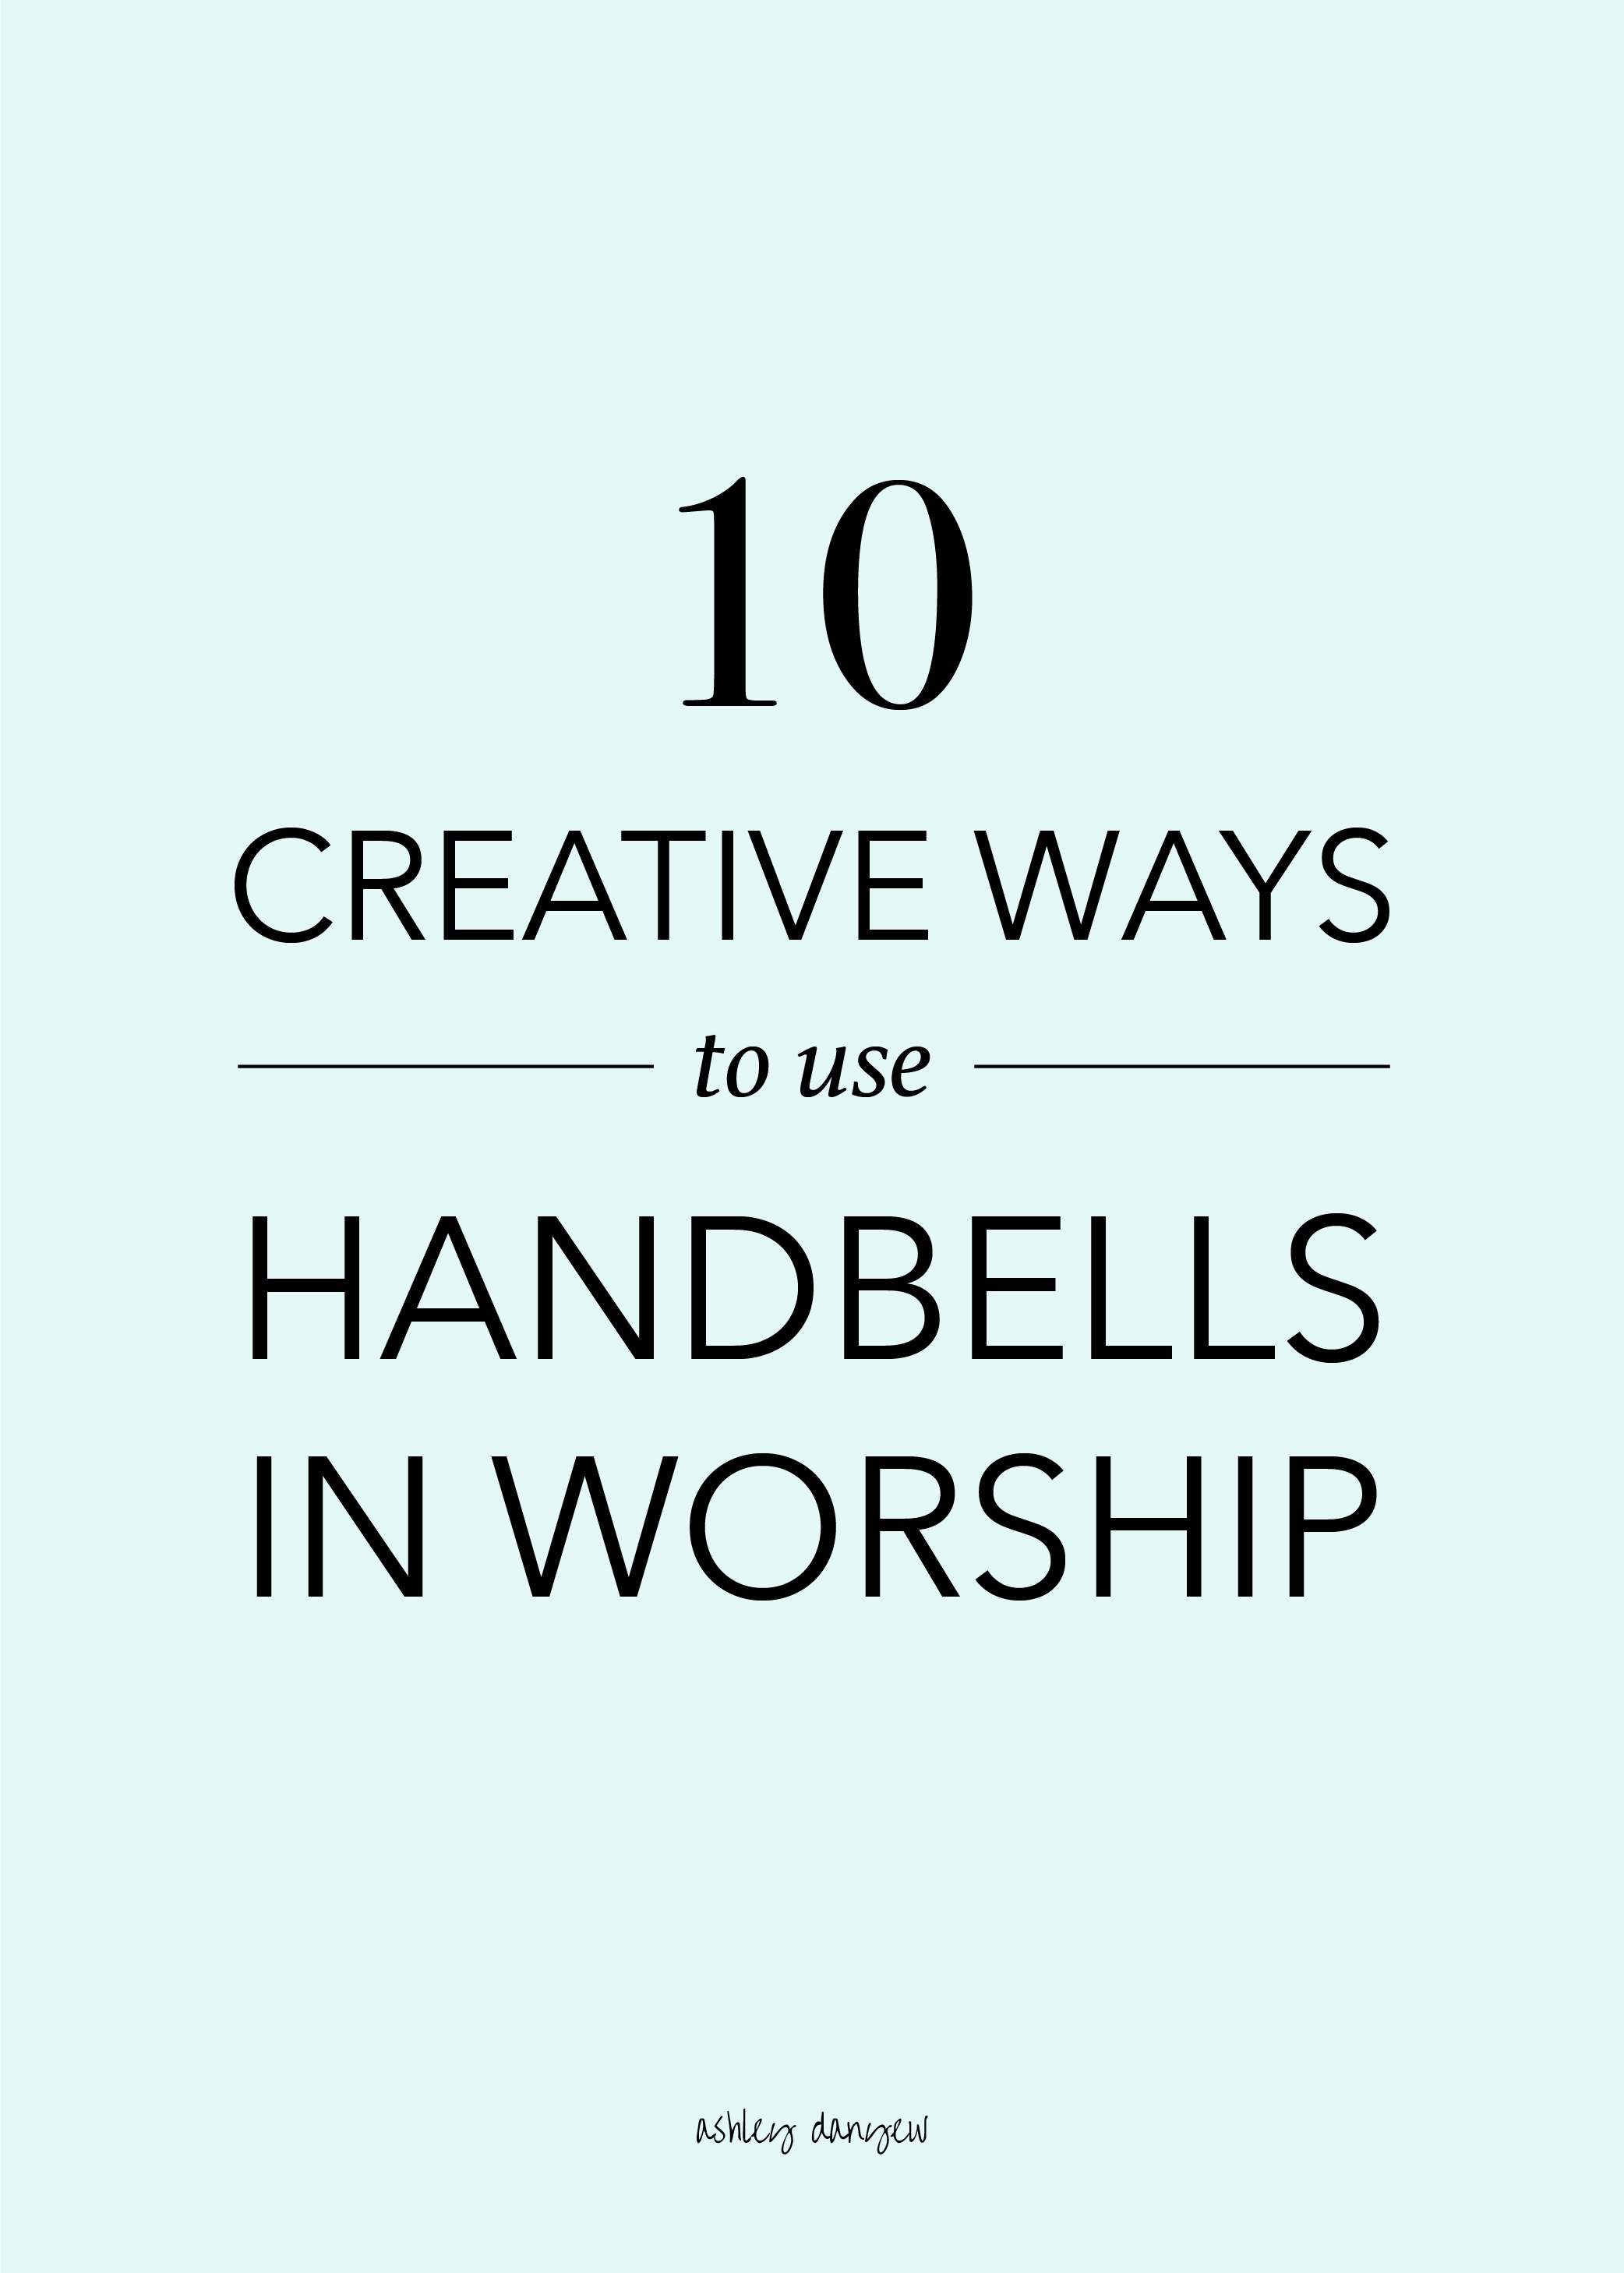 Copy of 10 Creative Ways to Use Handbells in Worship